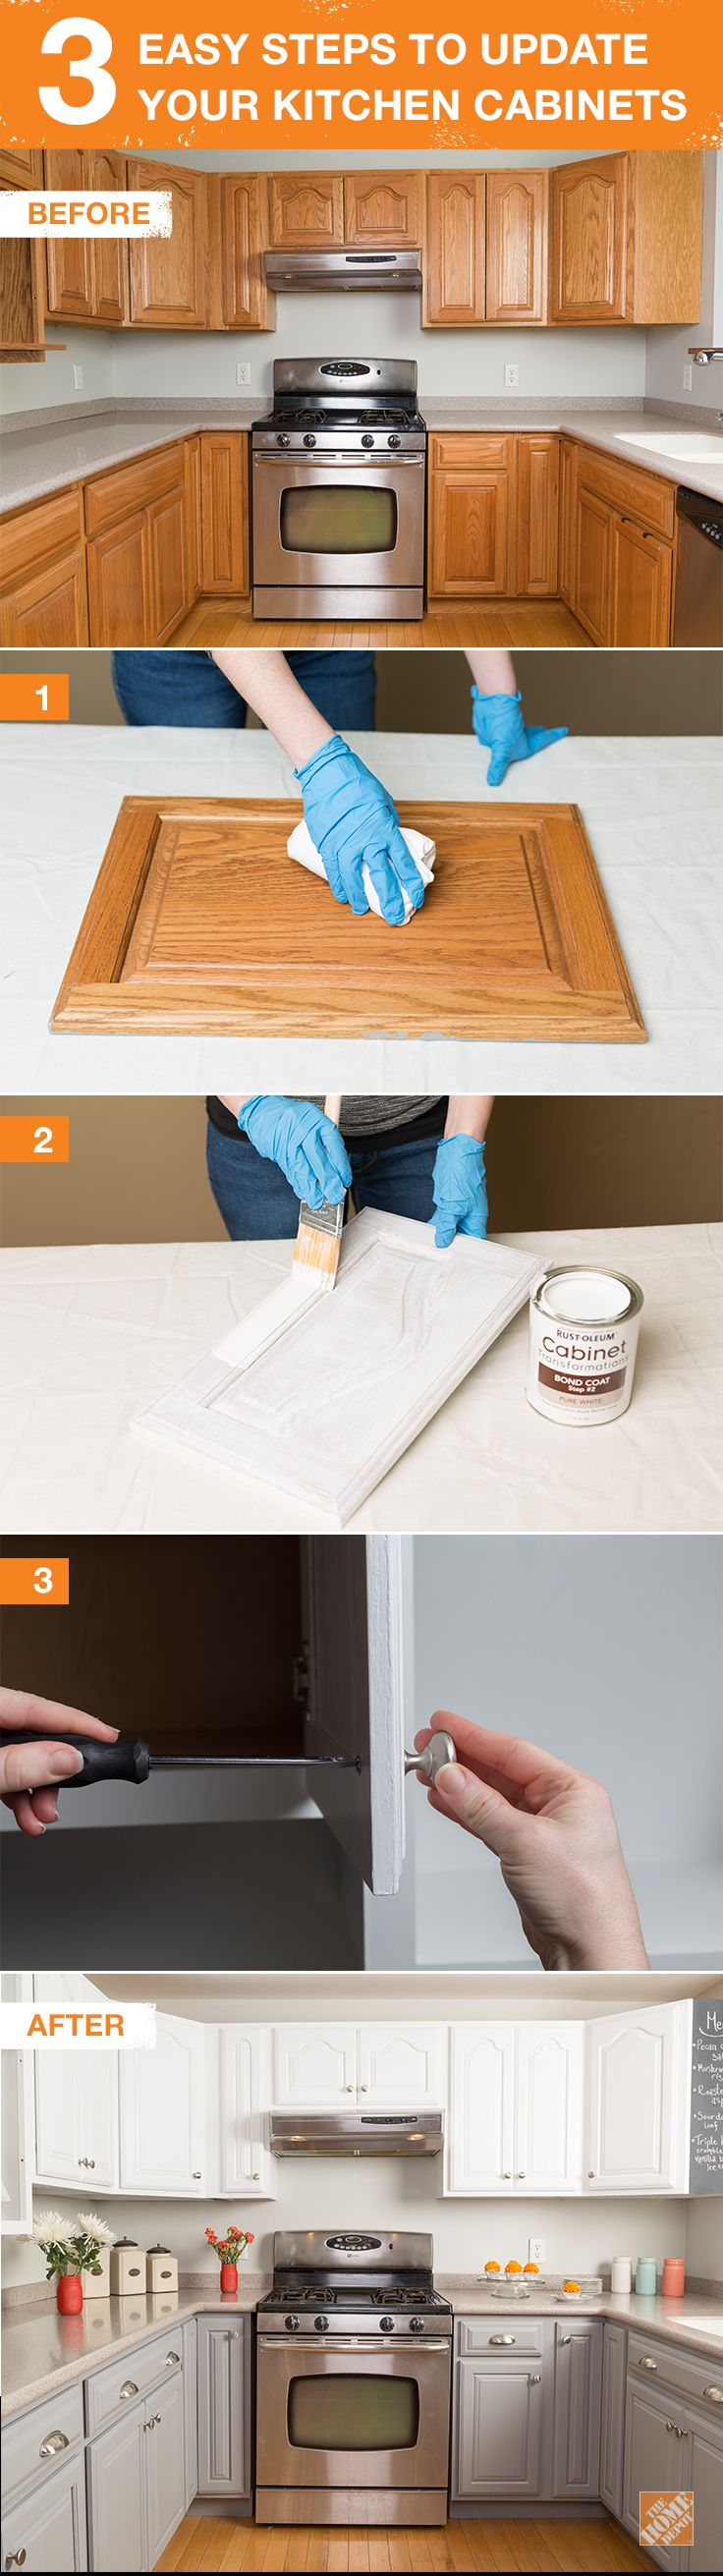 Best 25 Diy kitchen cabinets ideas on Pinterest